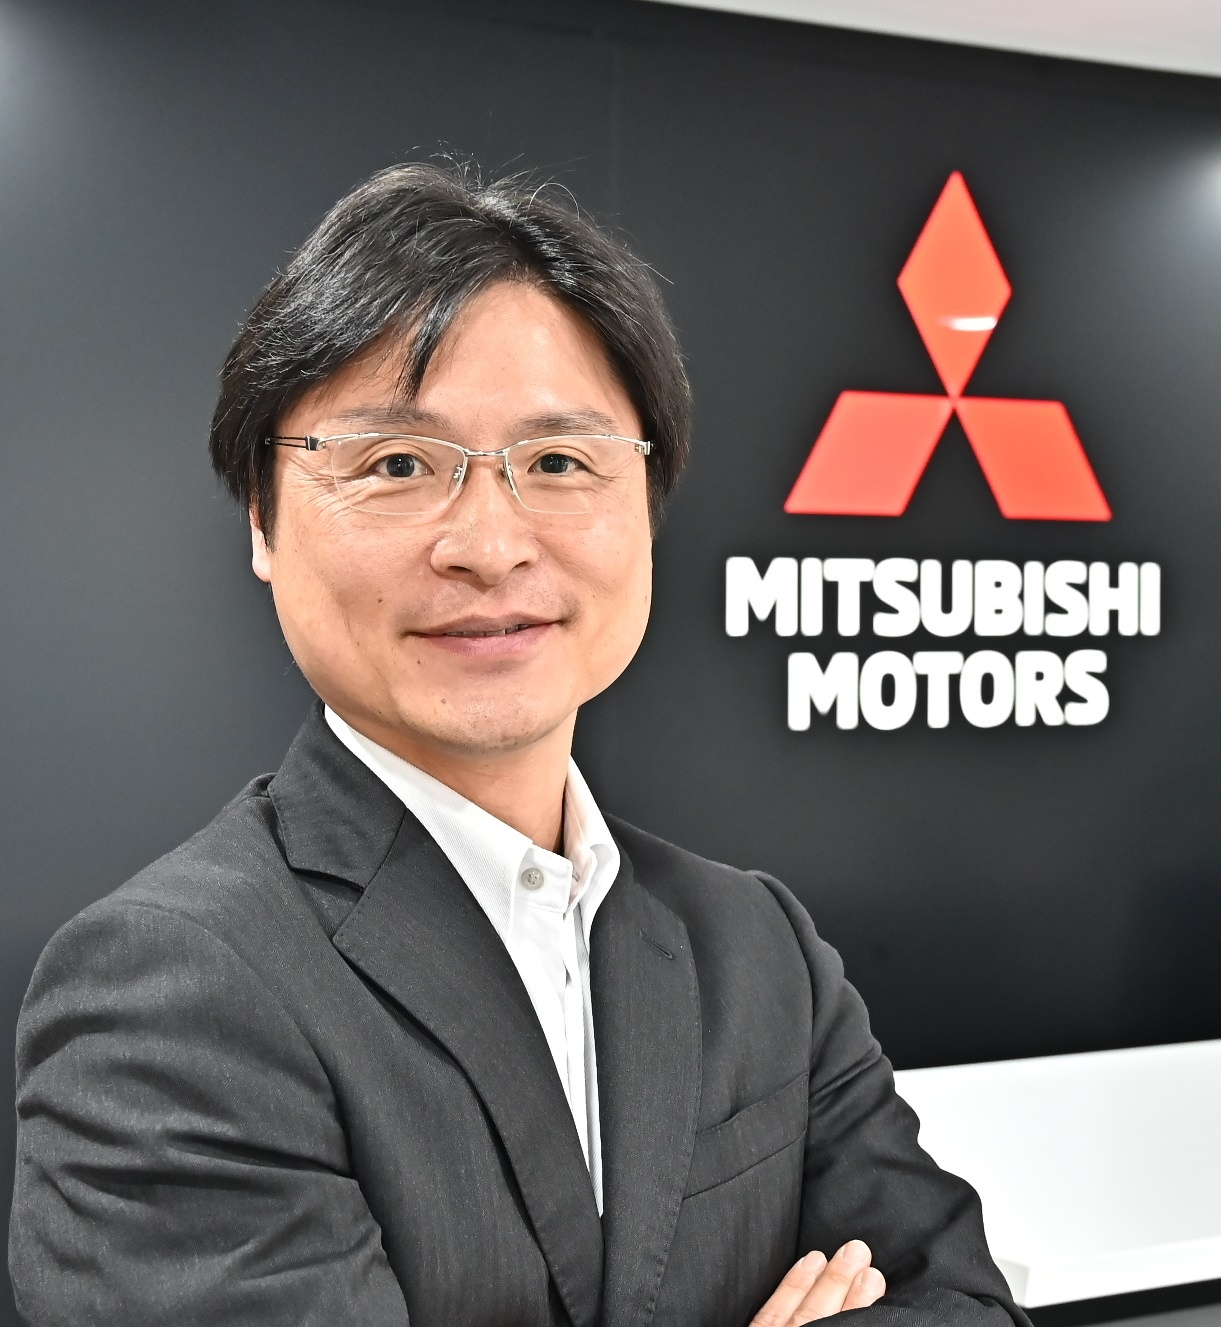 Mitsubishi Motors Middle East and Africa Appoints New President